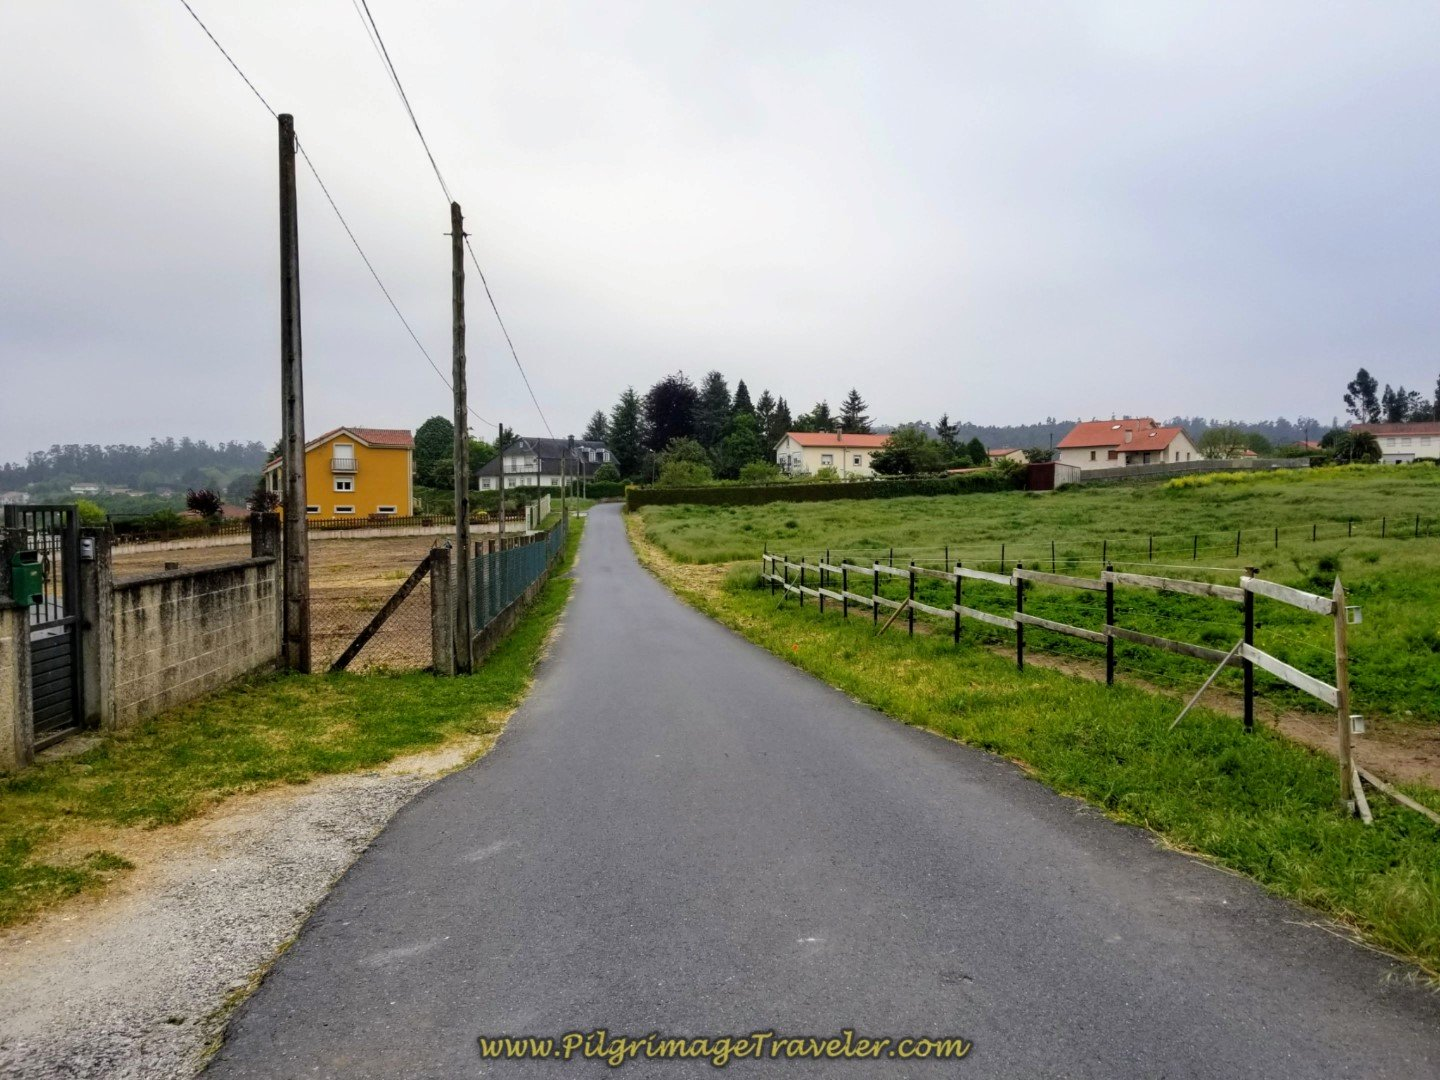 Pavement Through the Rural Way on day one of the Camino Finisterre